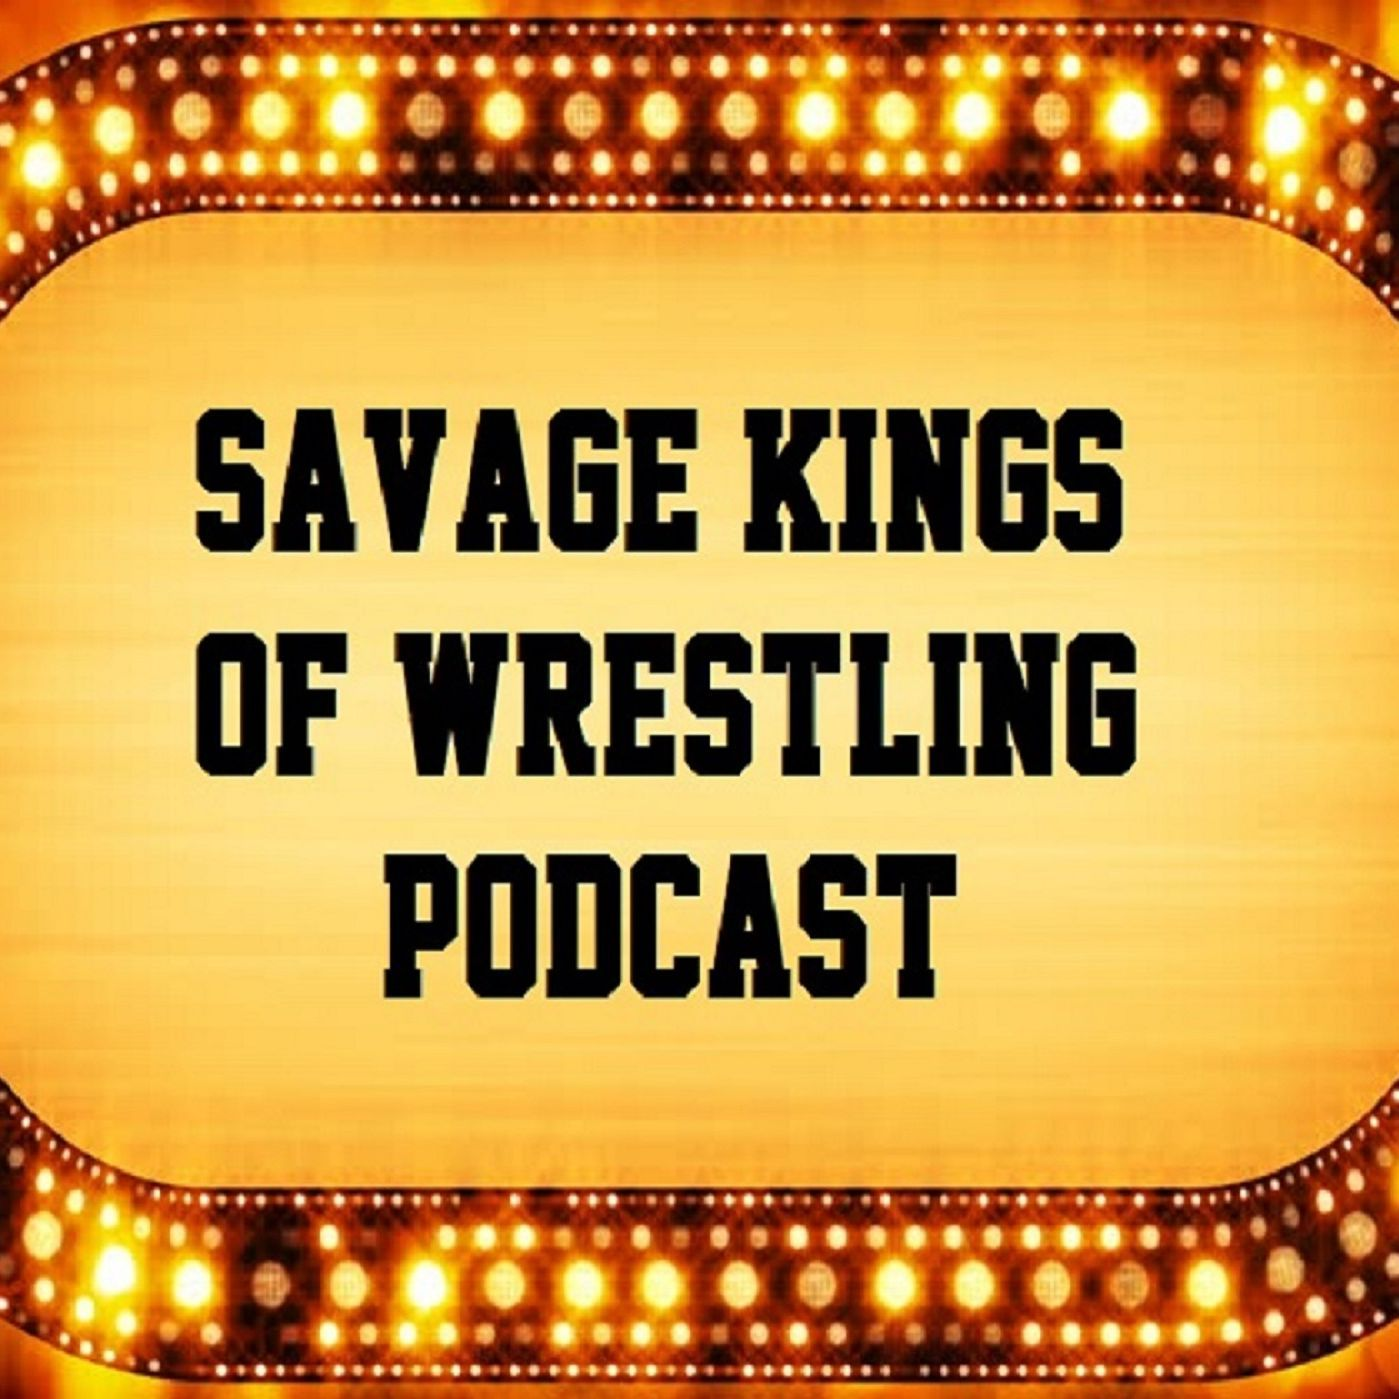 Savage Kings of Wrestling Podcast: The Musical